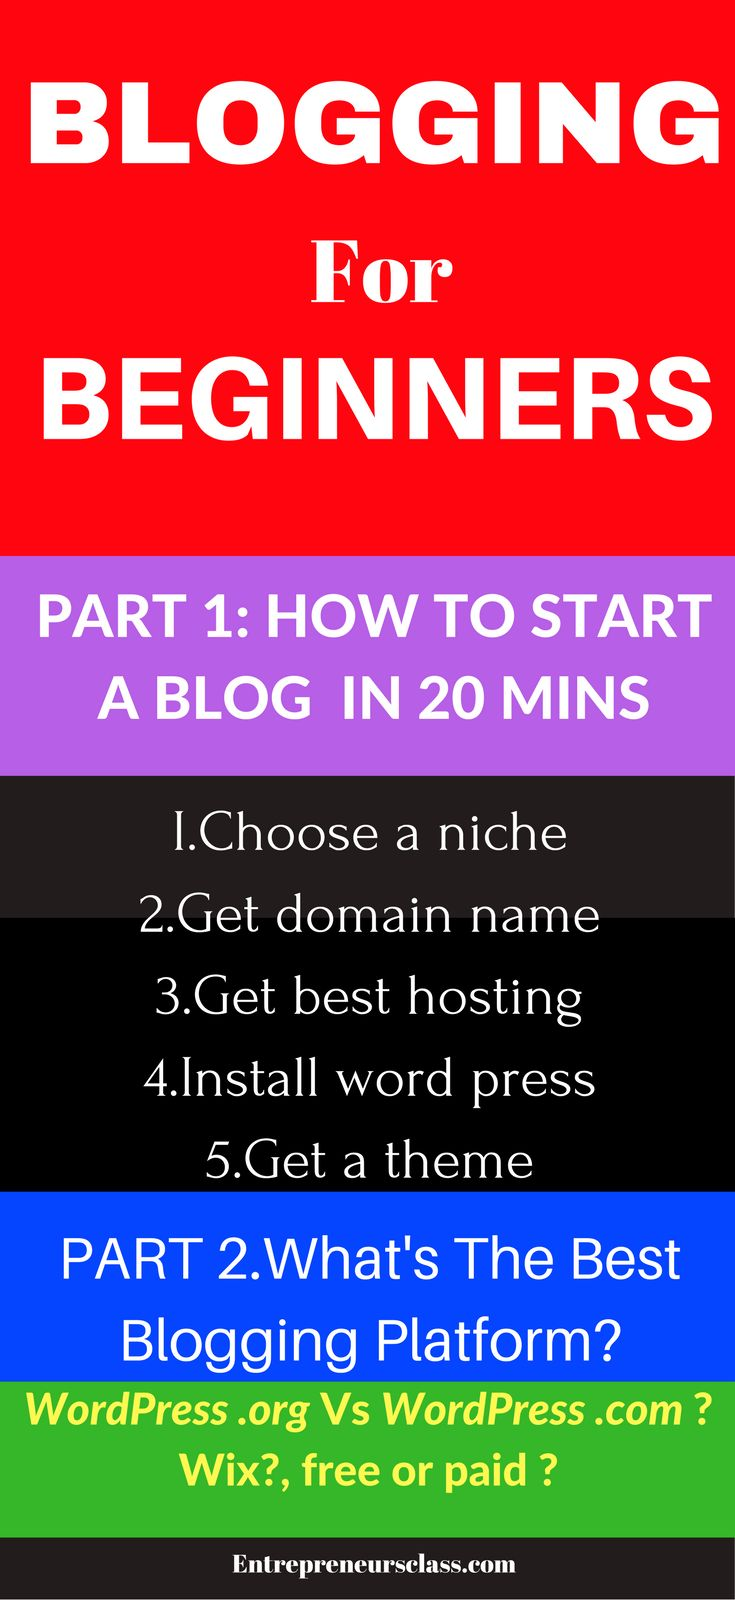 Blogging for beginners - how to start a profitable blog under 20 minutes step by step guide.